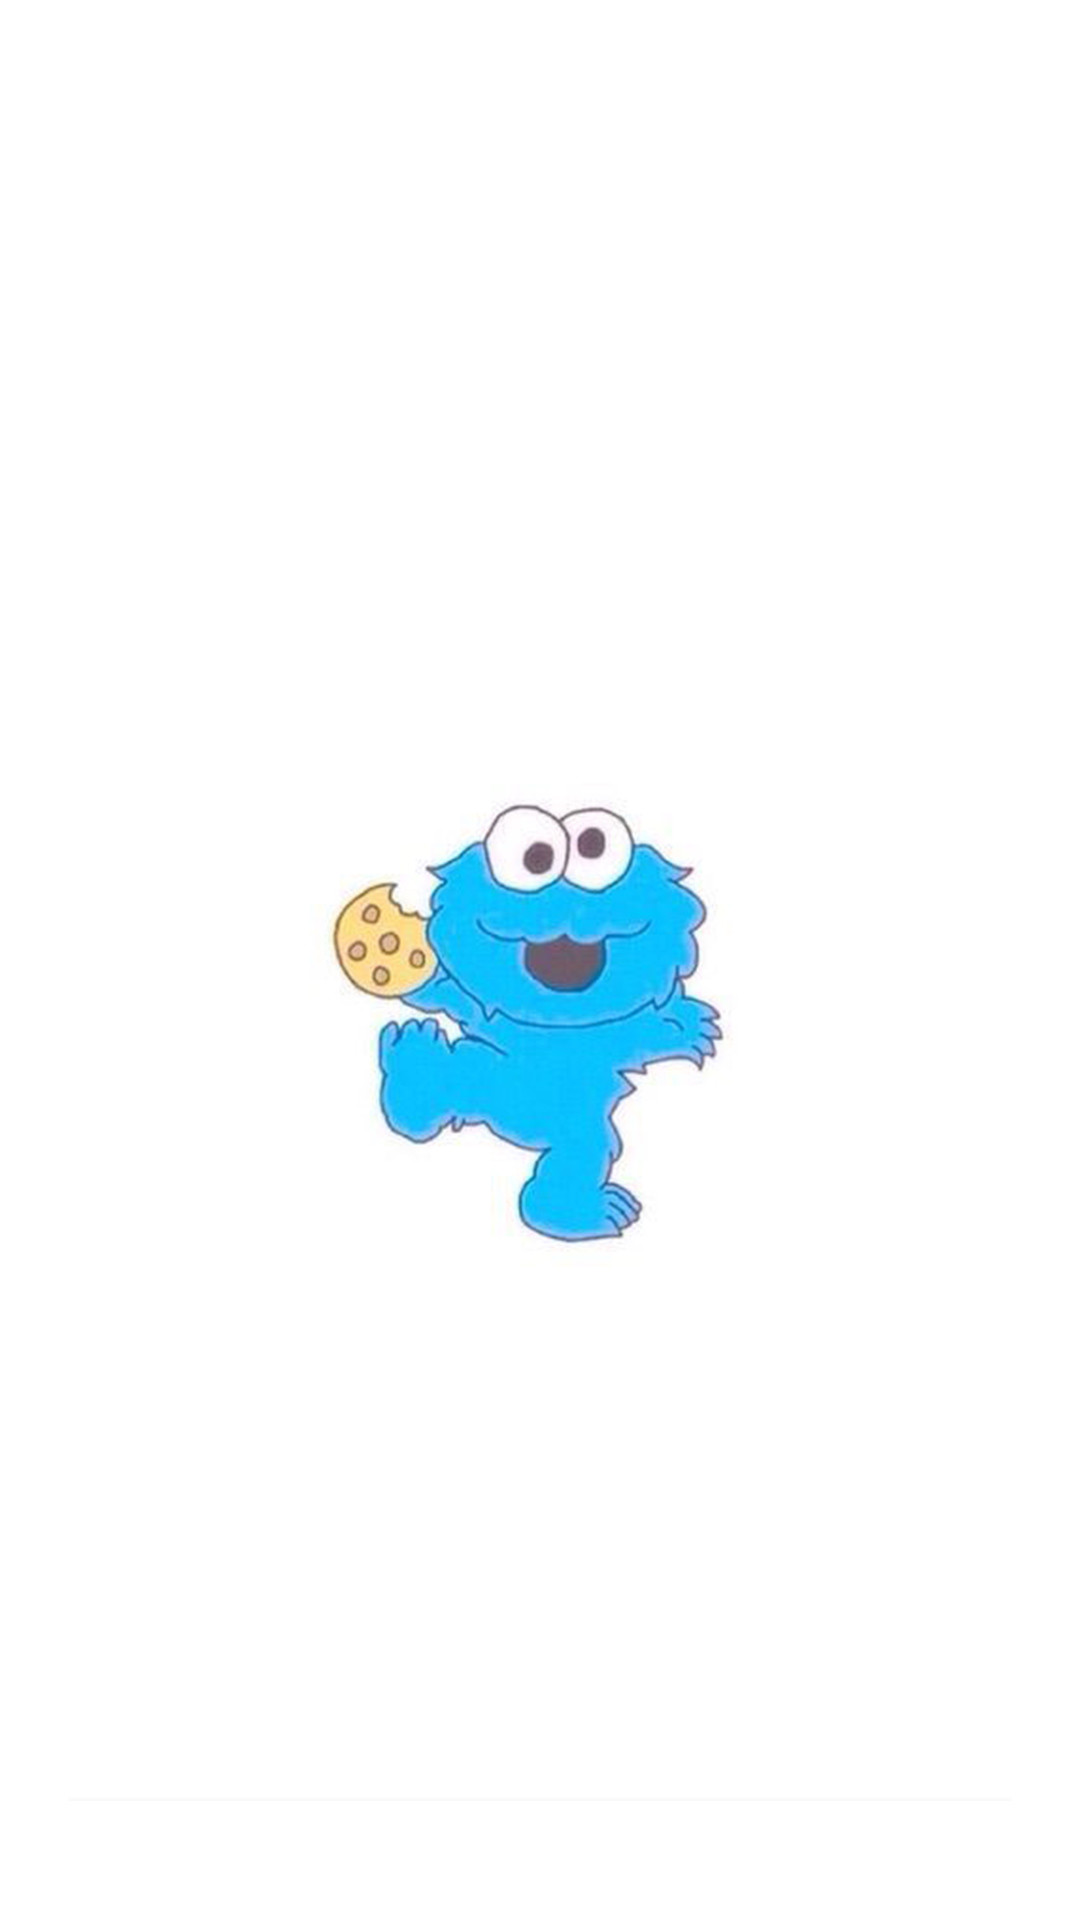 Cute Cookie Monster Wallpaper 58 Images